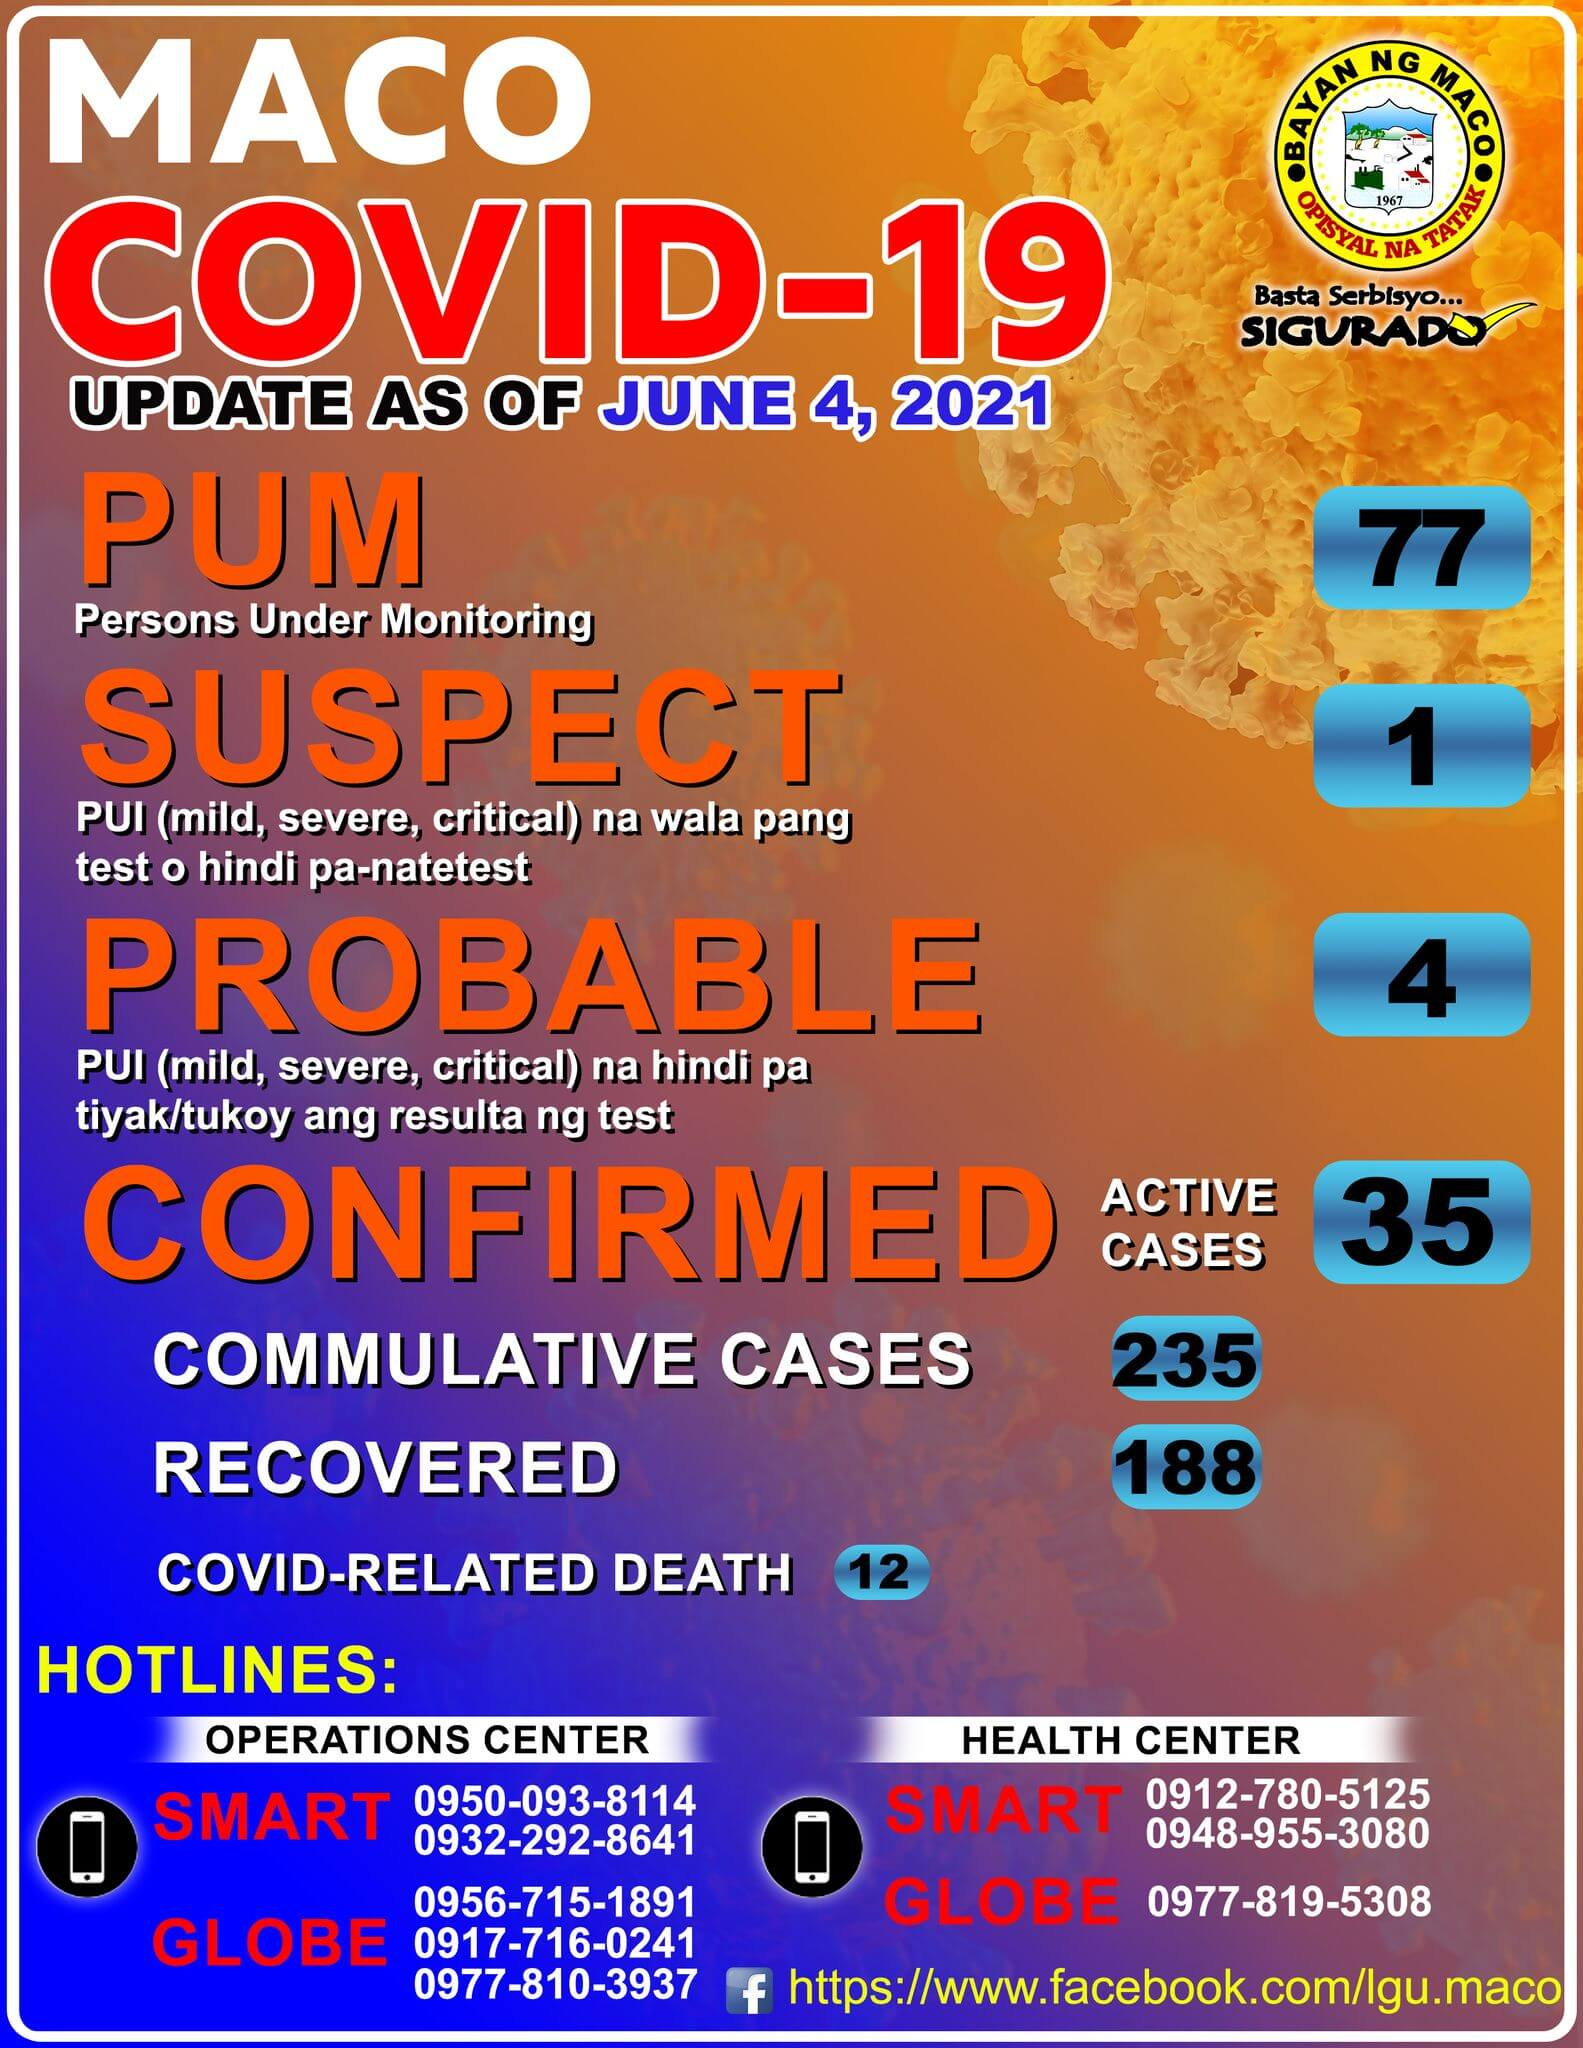 Municipality of Maco Official COVID-19 Case Count as of June 4, 2021